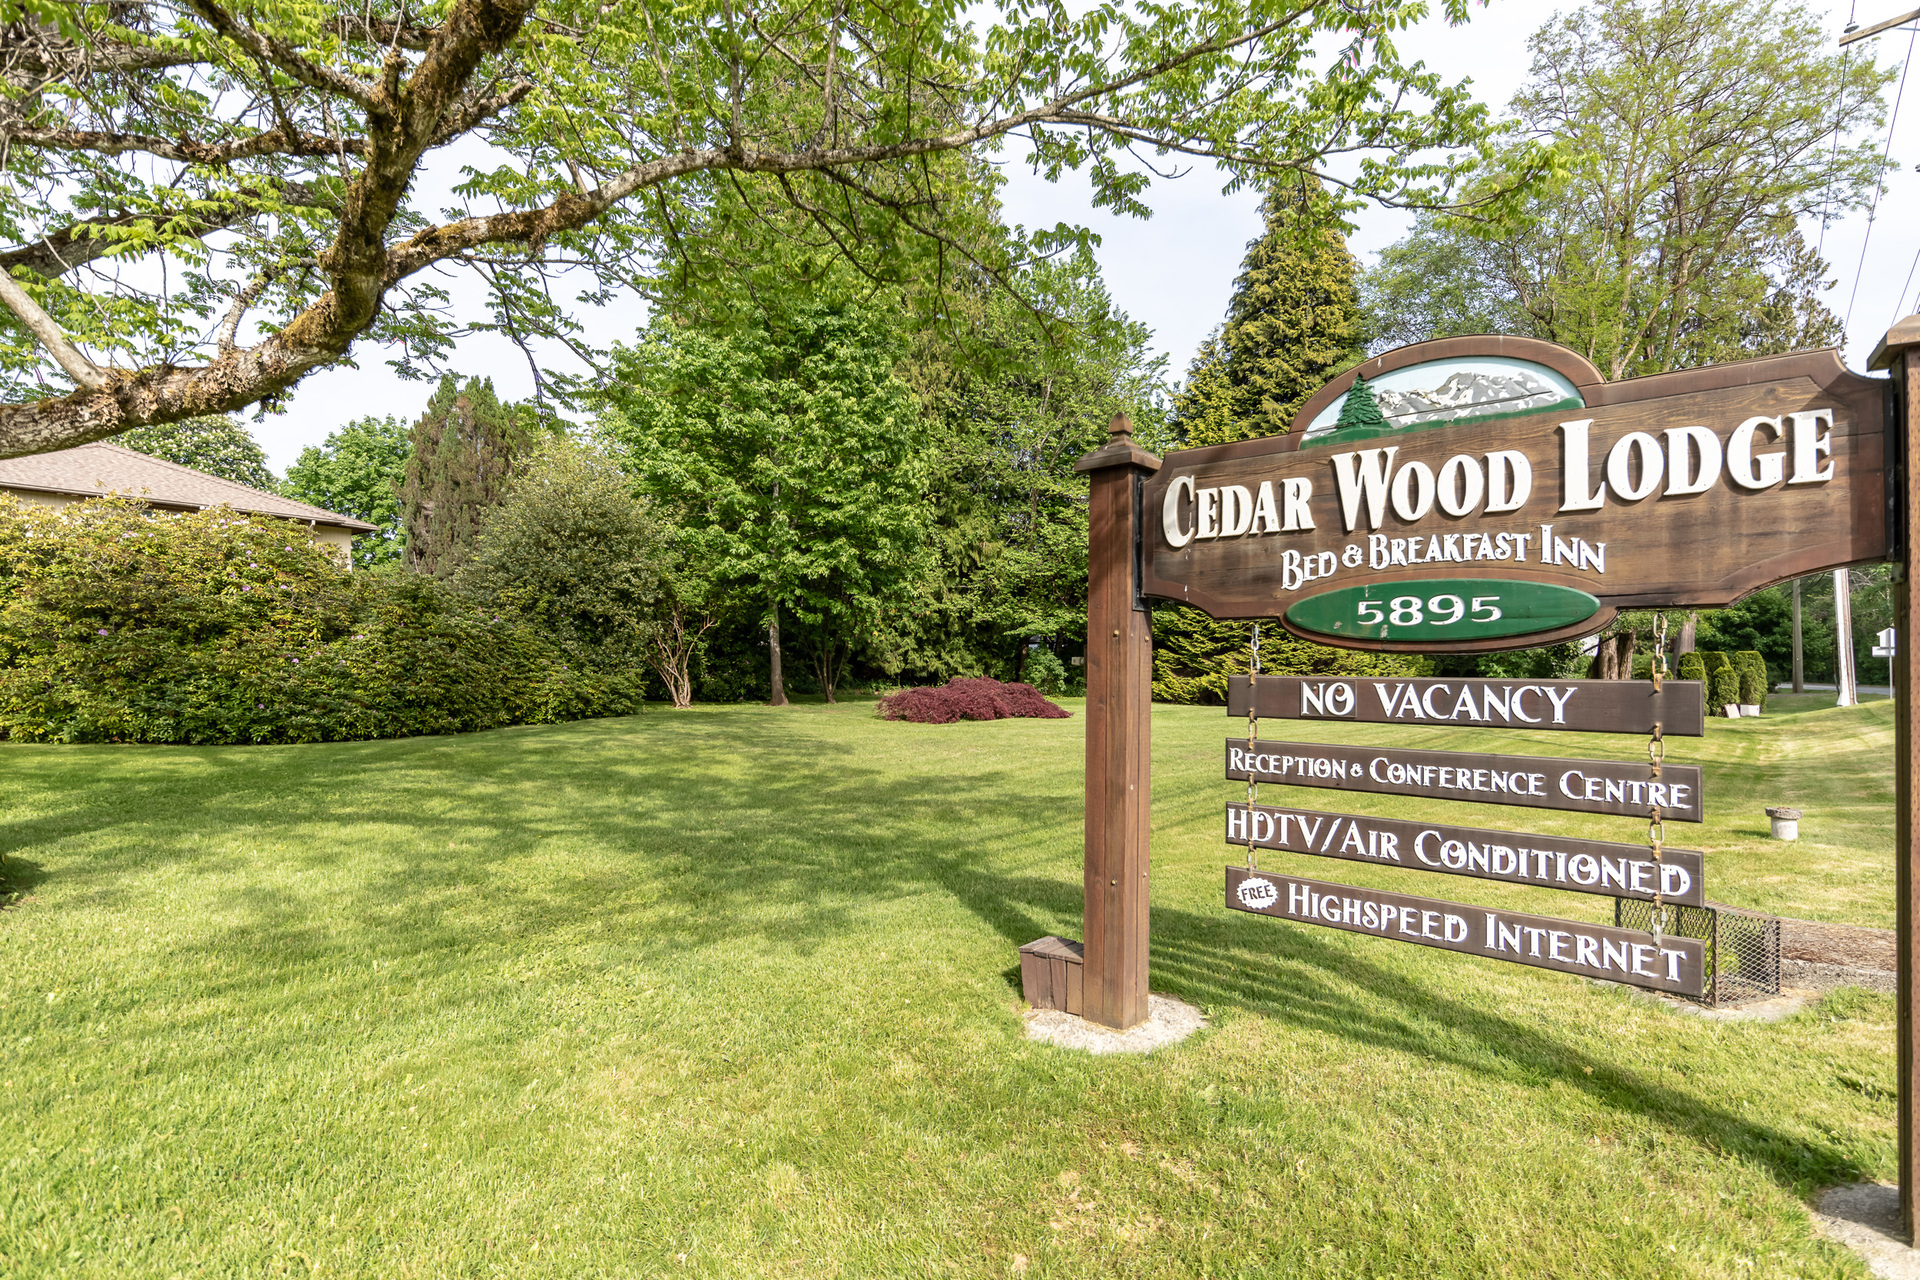 Cedar Wood Lodge at 5895 River Road, Port Alberni, Vancouver Island